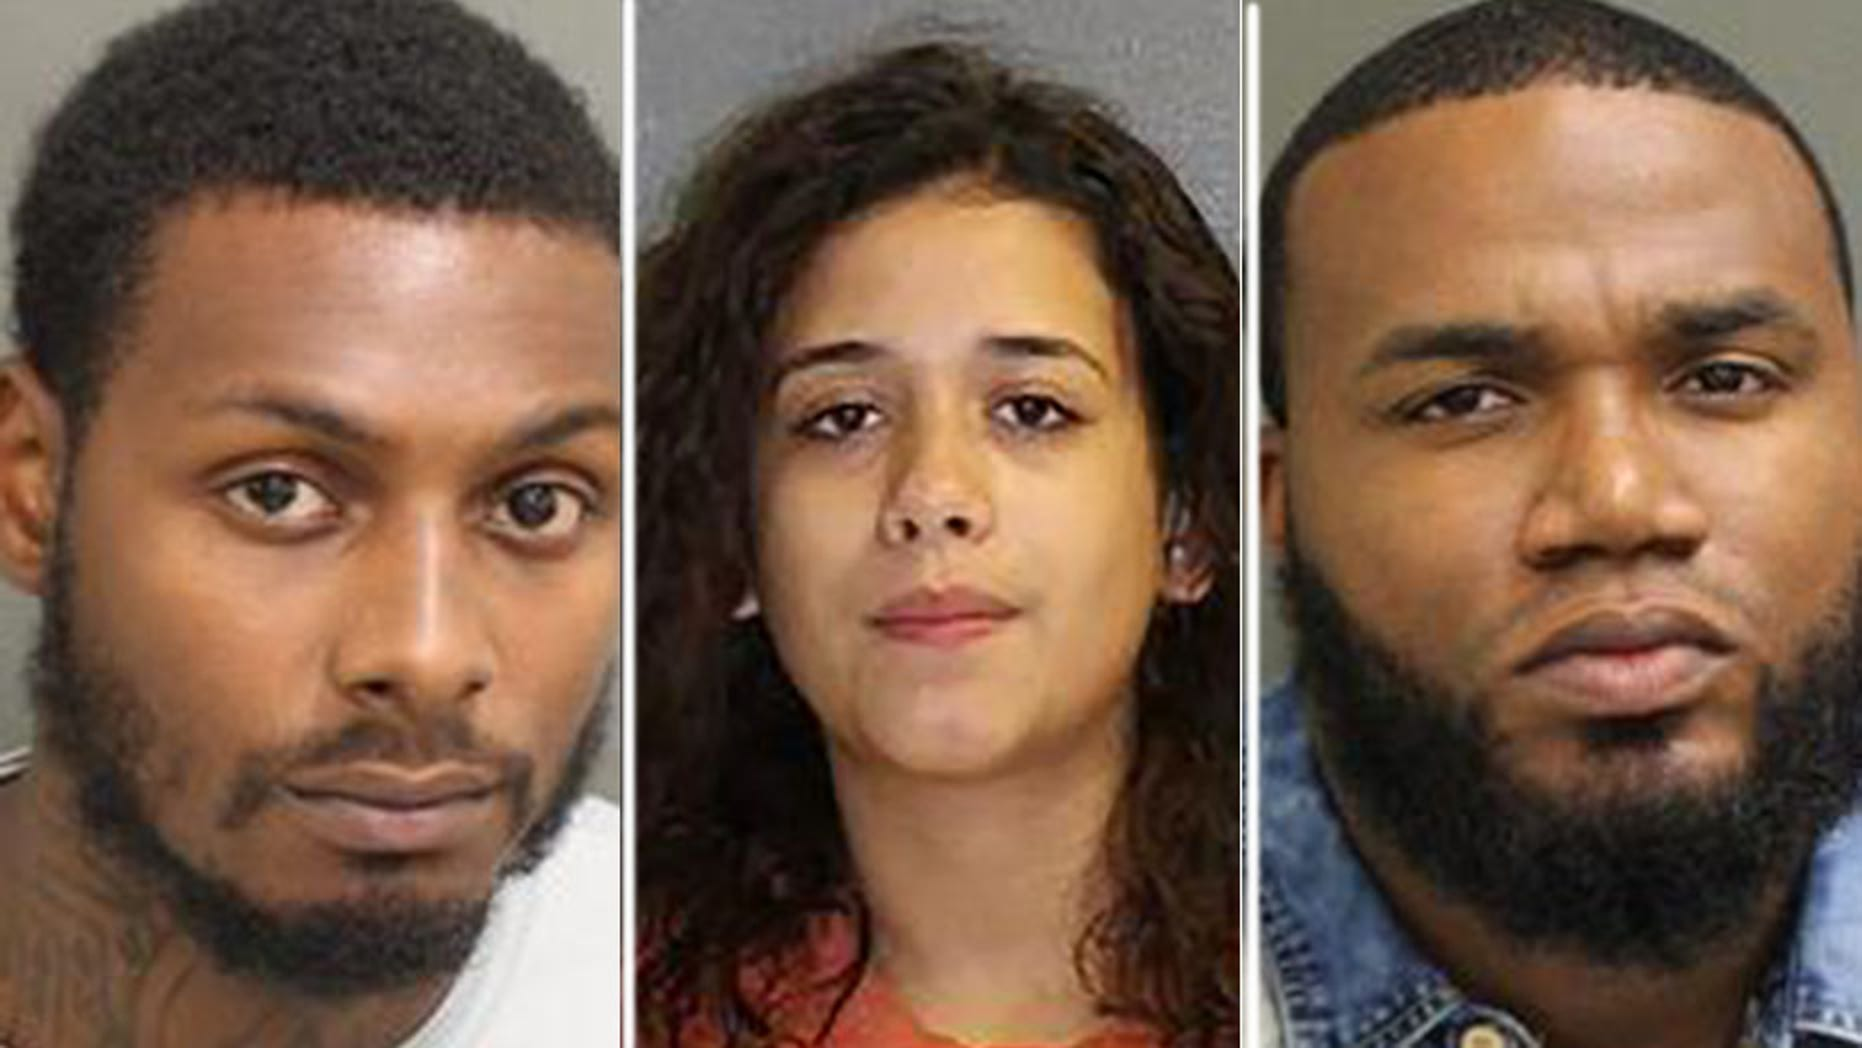 Mugshots for (l. to r.) Benjamin Bascom, 24, Melissa Roque, 21, and Kevin McFoley, 28